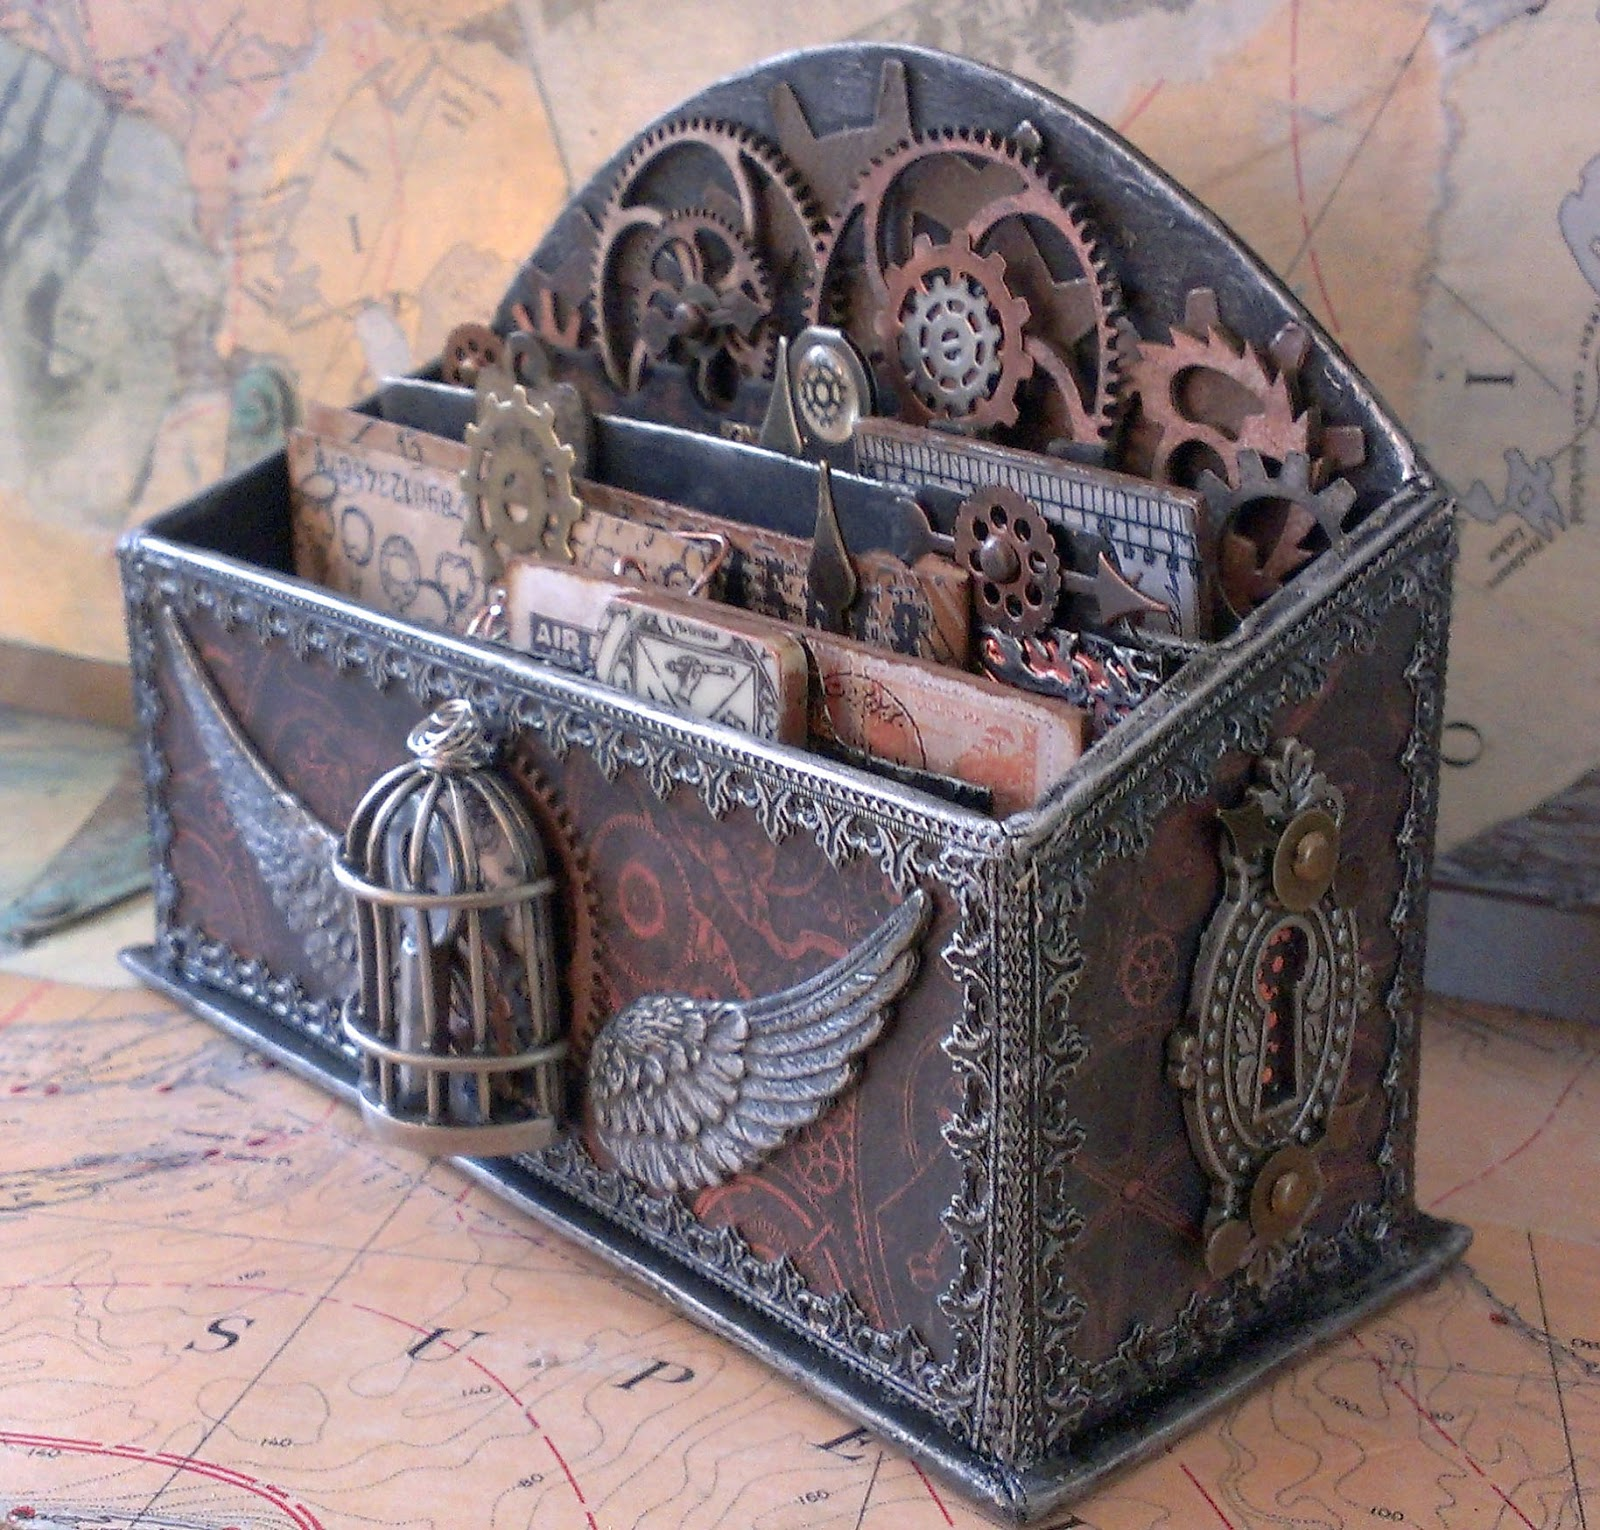 Steampunk Furniture For Sale Starrgazer Creates Steampunk Mail Published